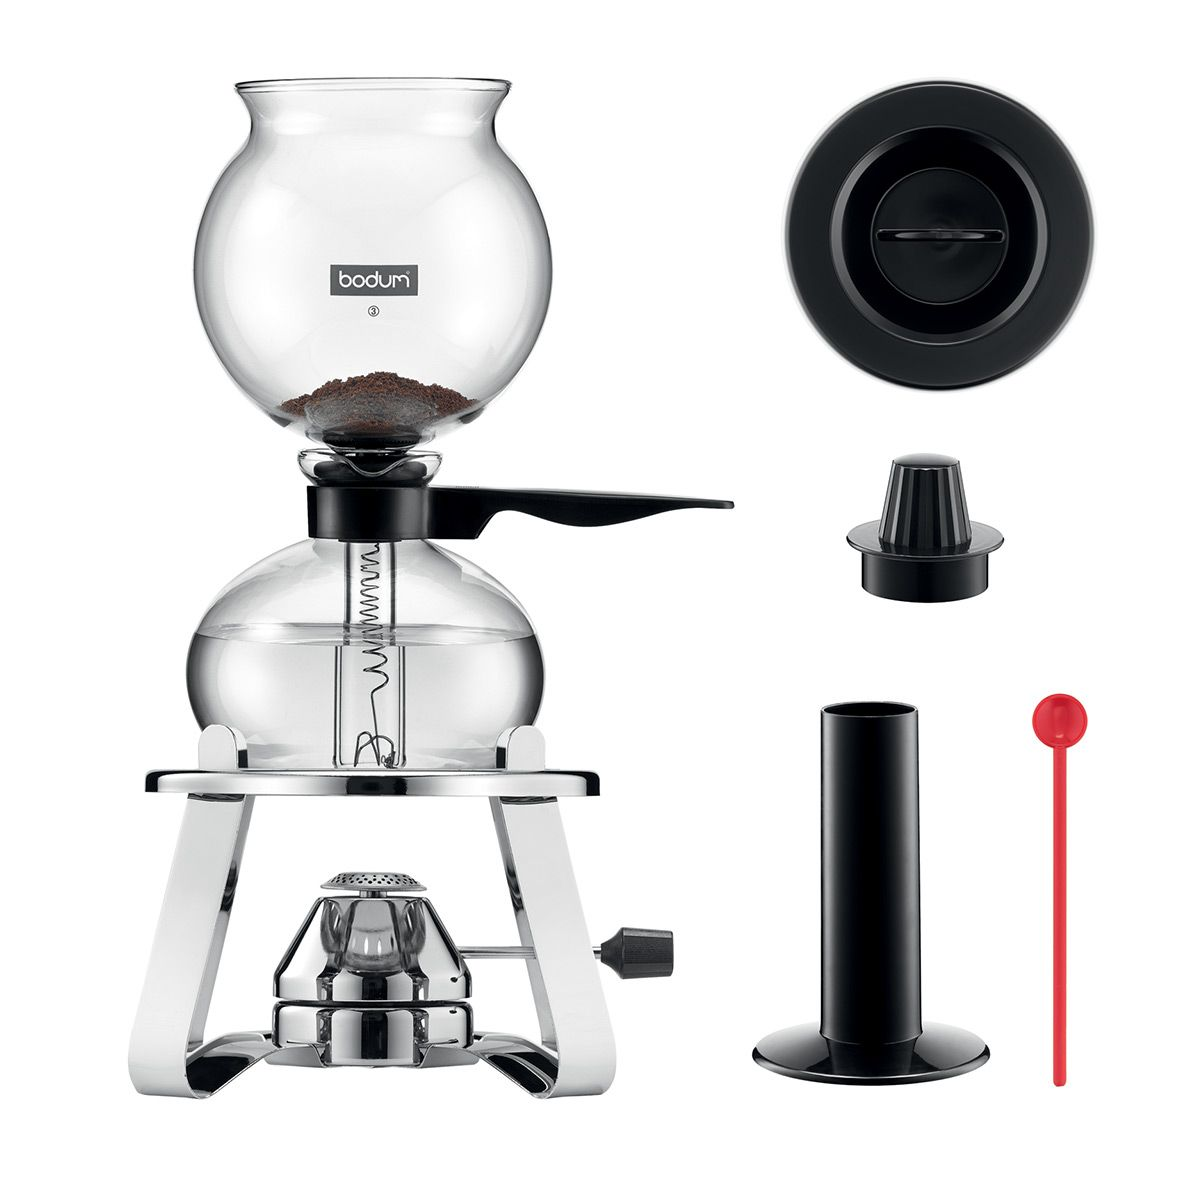 Vacuum Coffee Maker With Gas Burner PEBO Bodum